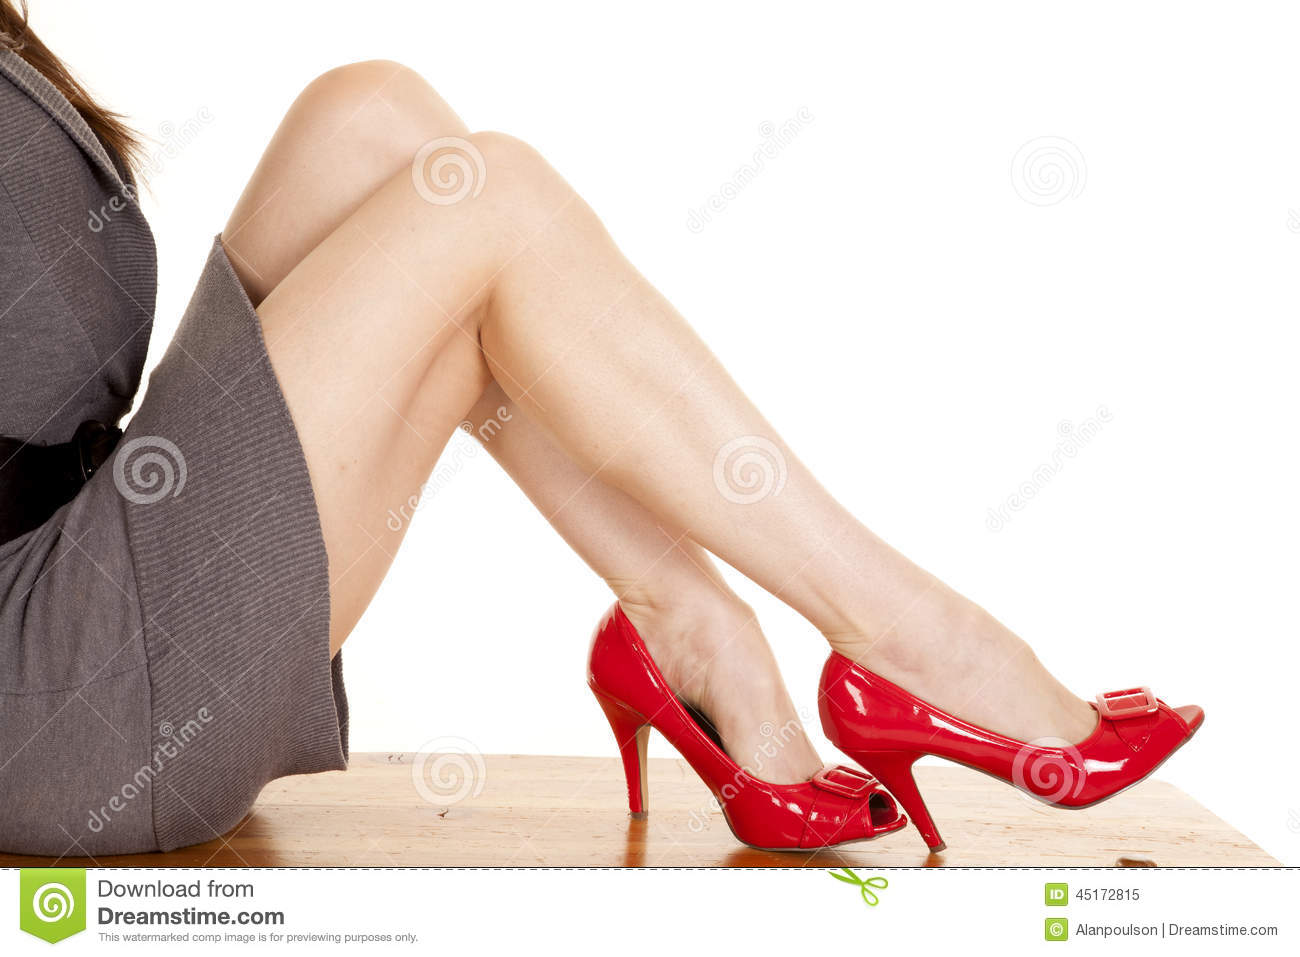 red heel chair desk target au woman legs sit gray dress heels stock photo image